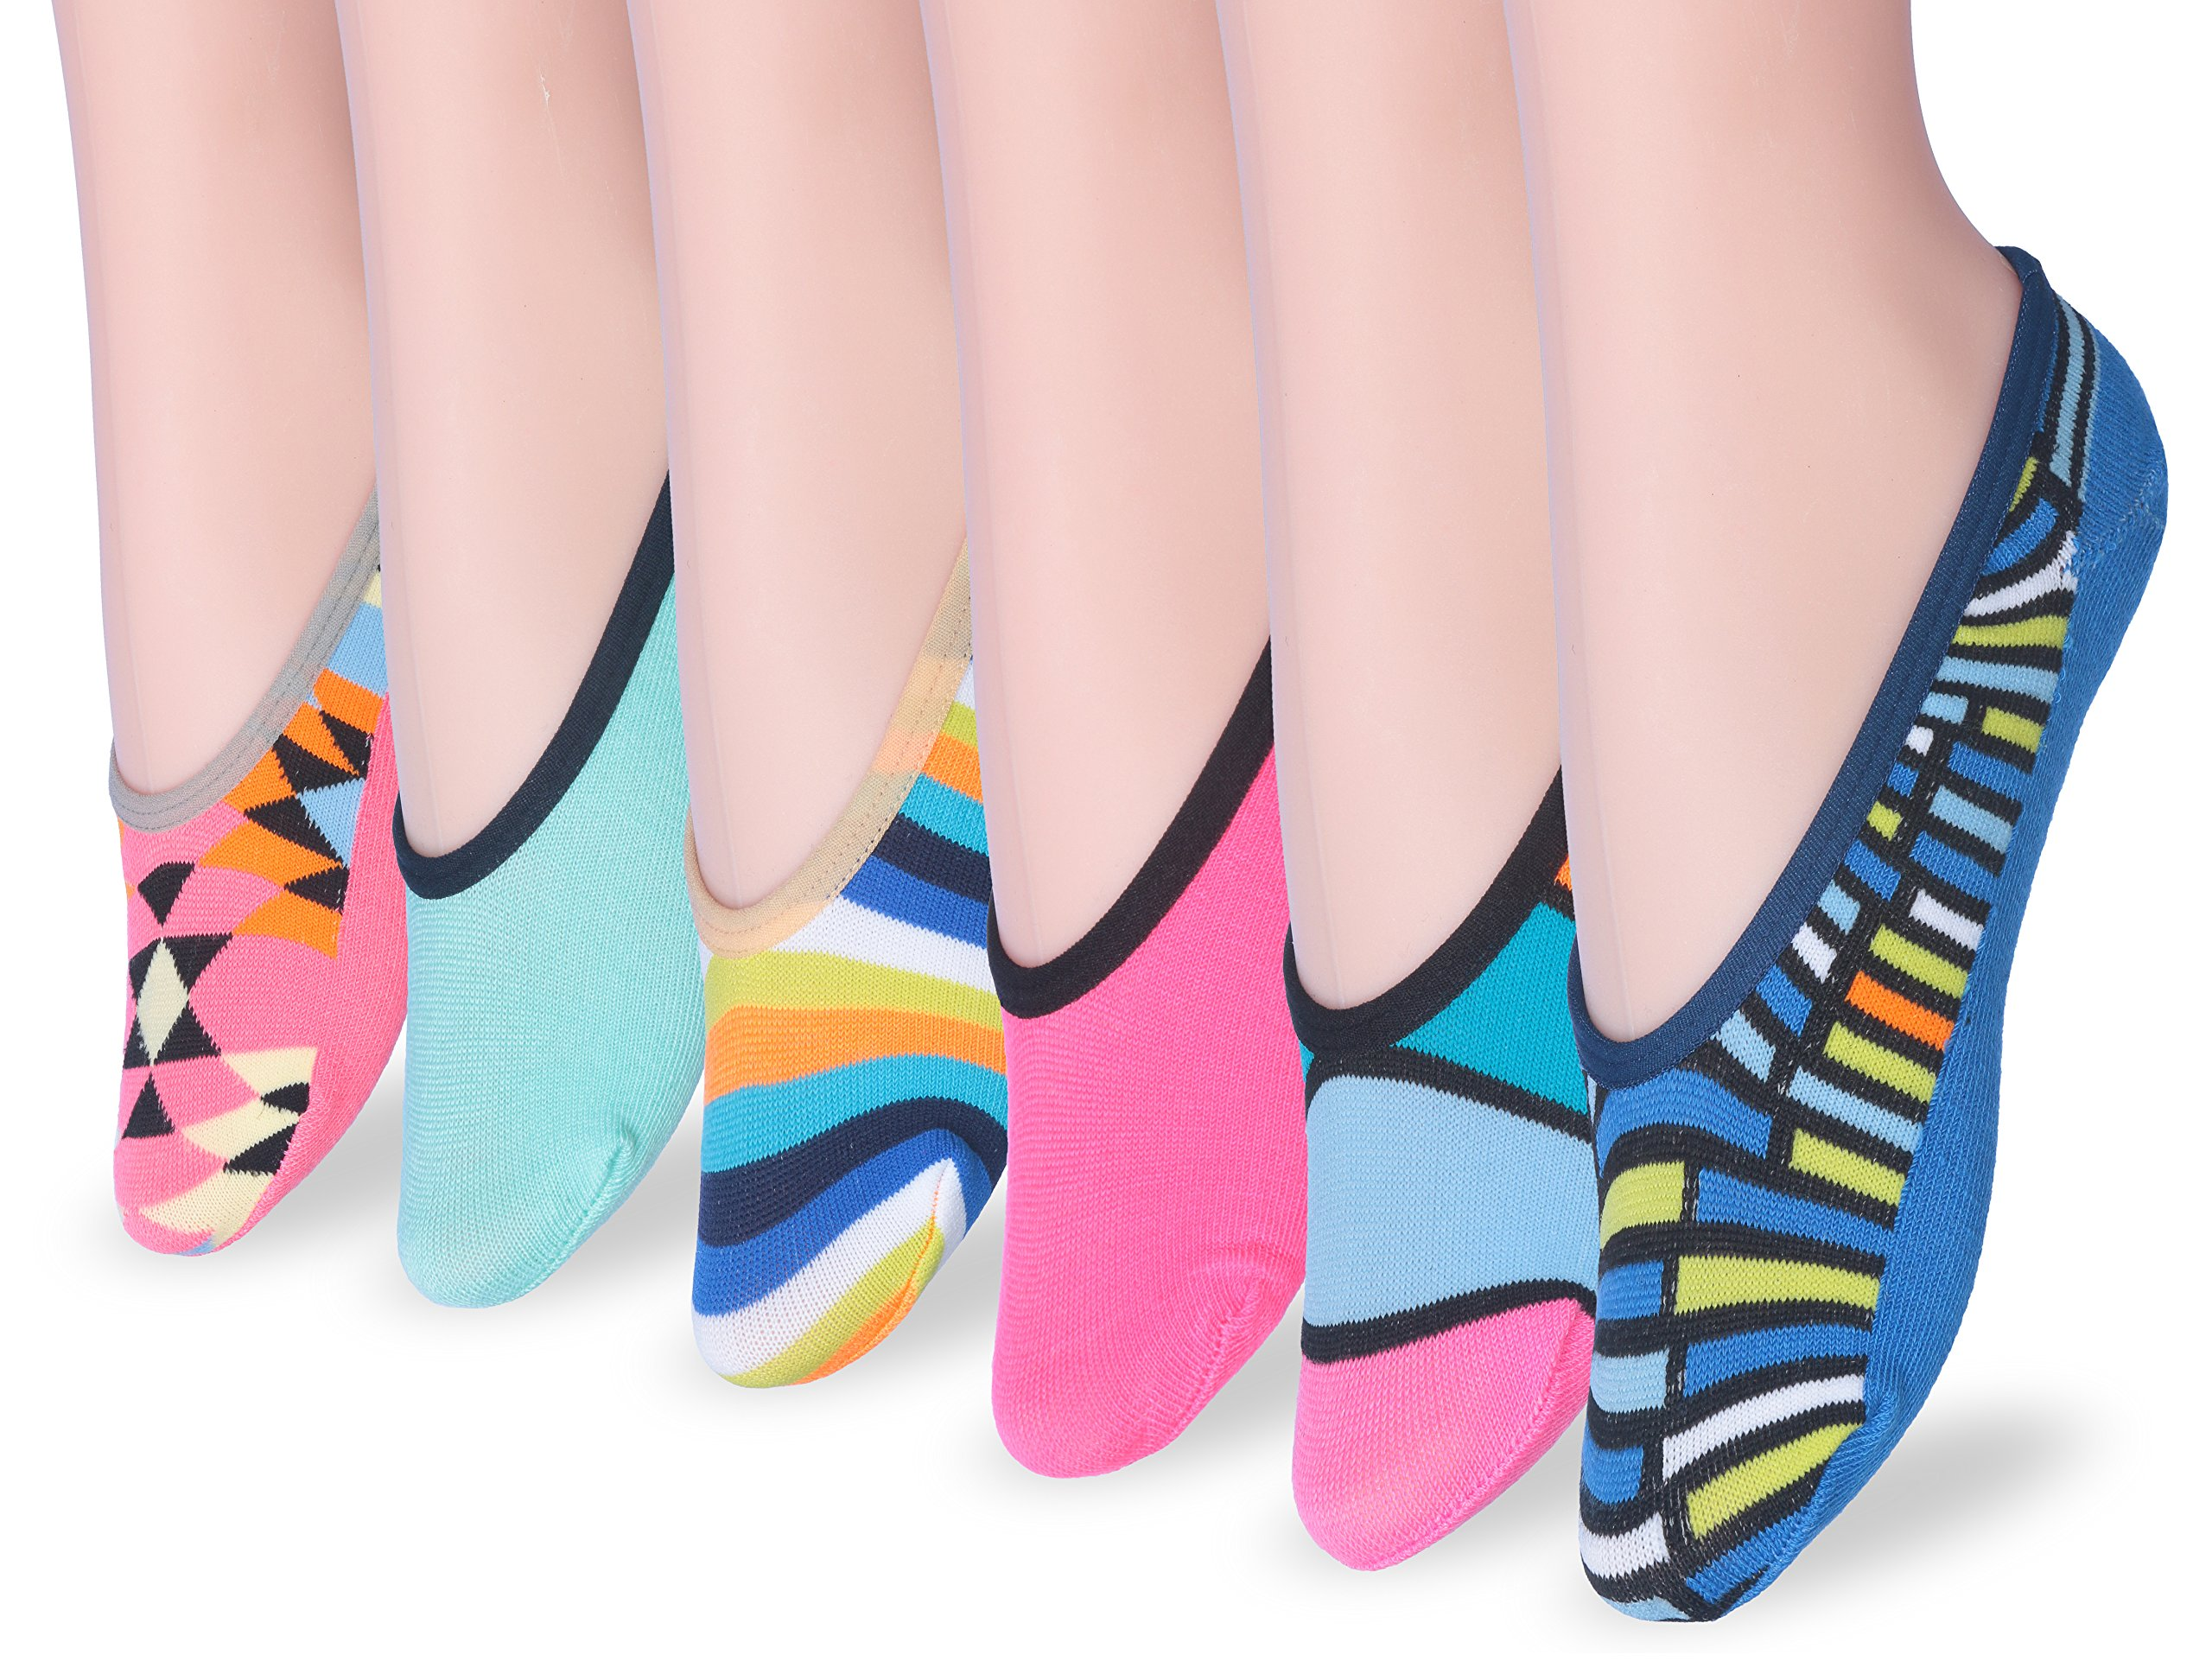 Tipi Toe Women's Colorful Patterned No-Show Low-Cut Sock Foot Liners (10 or 12 Pairs) (PED102-12)